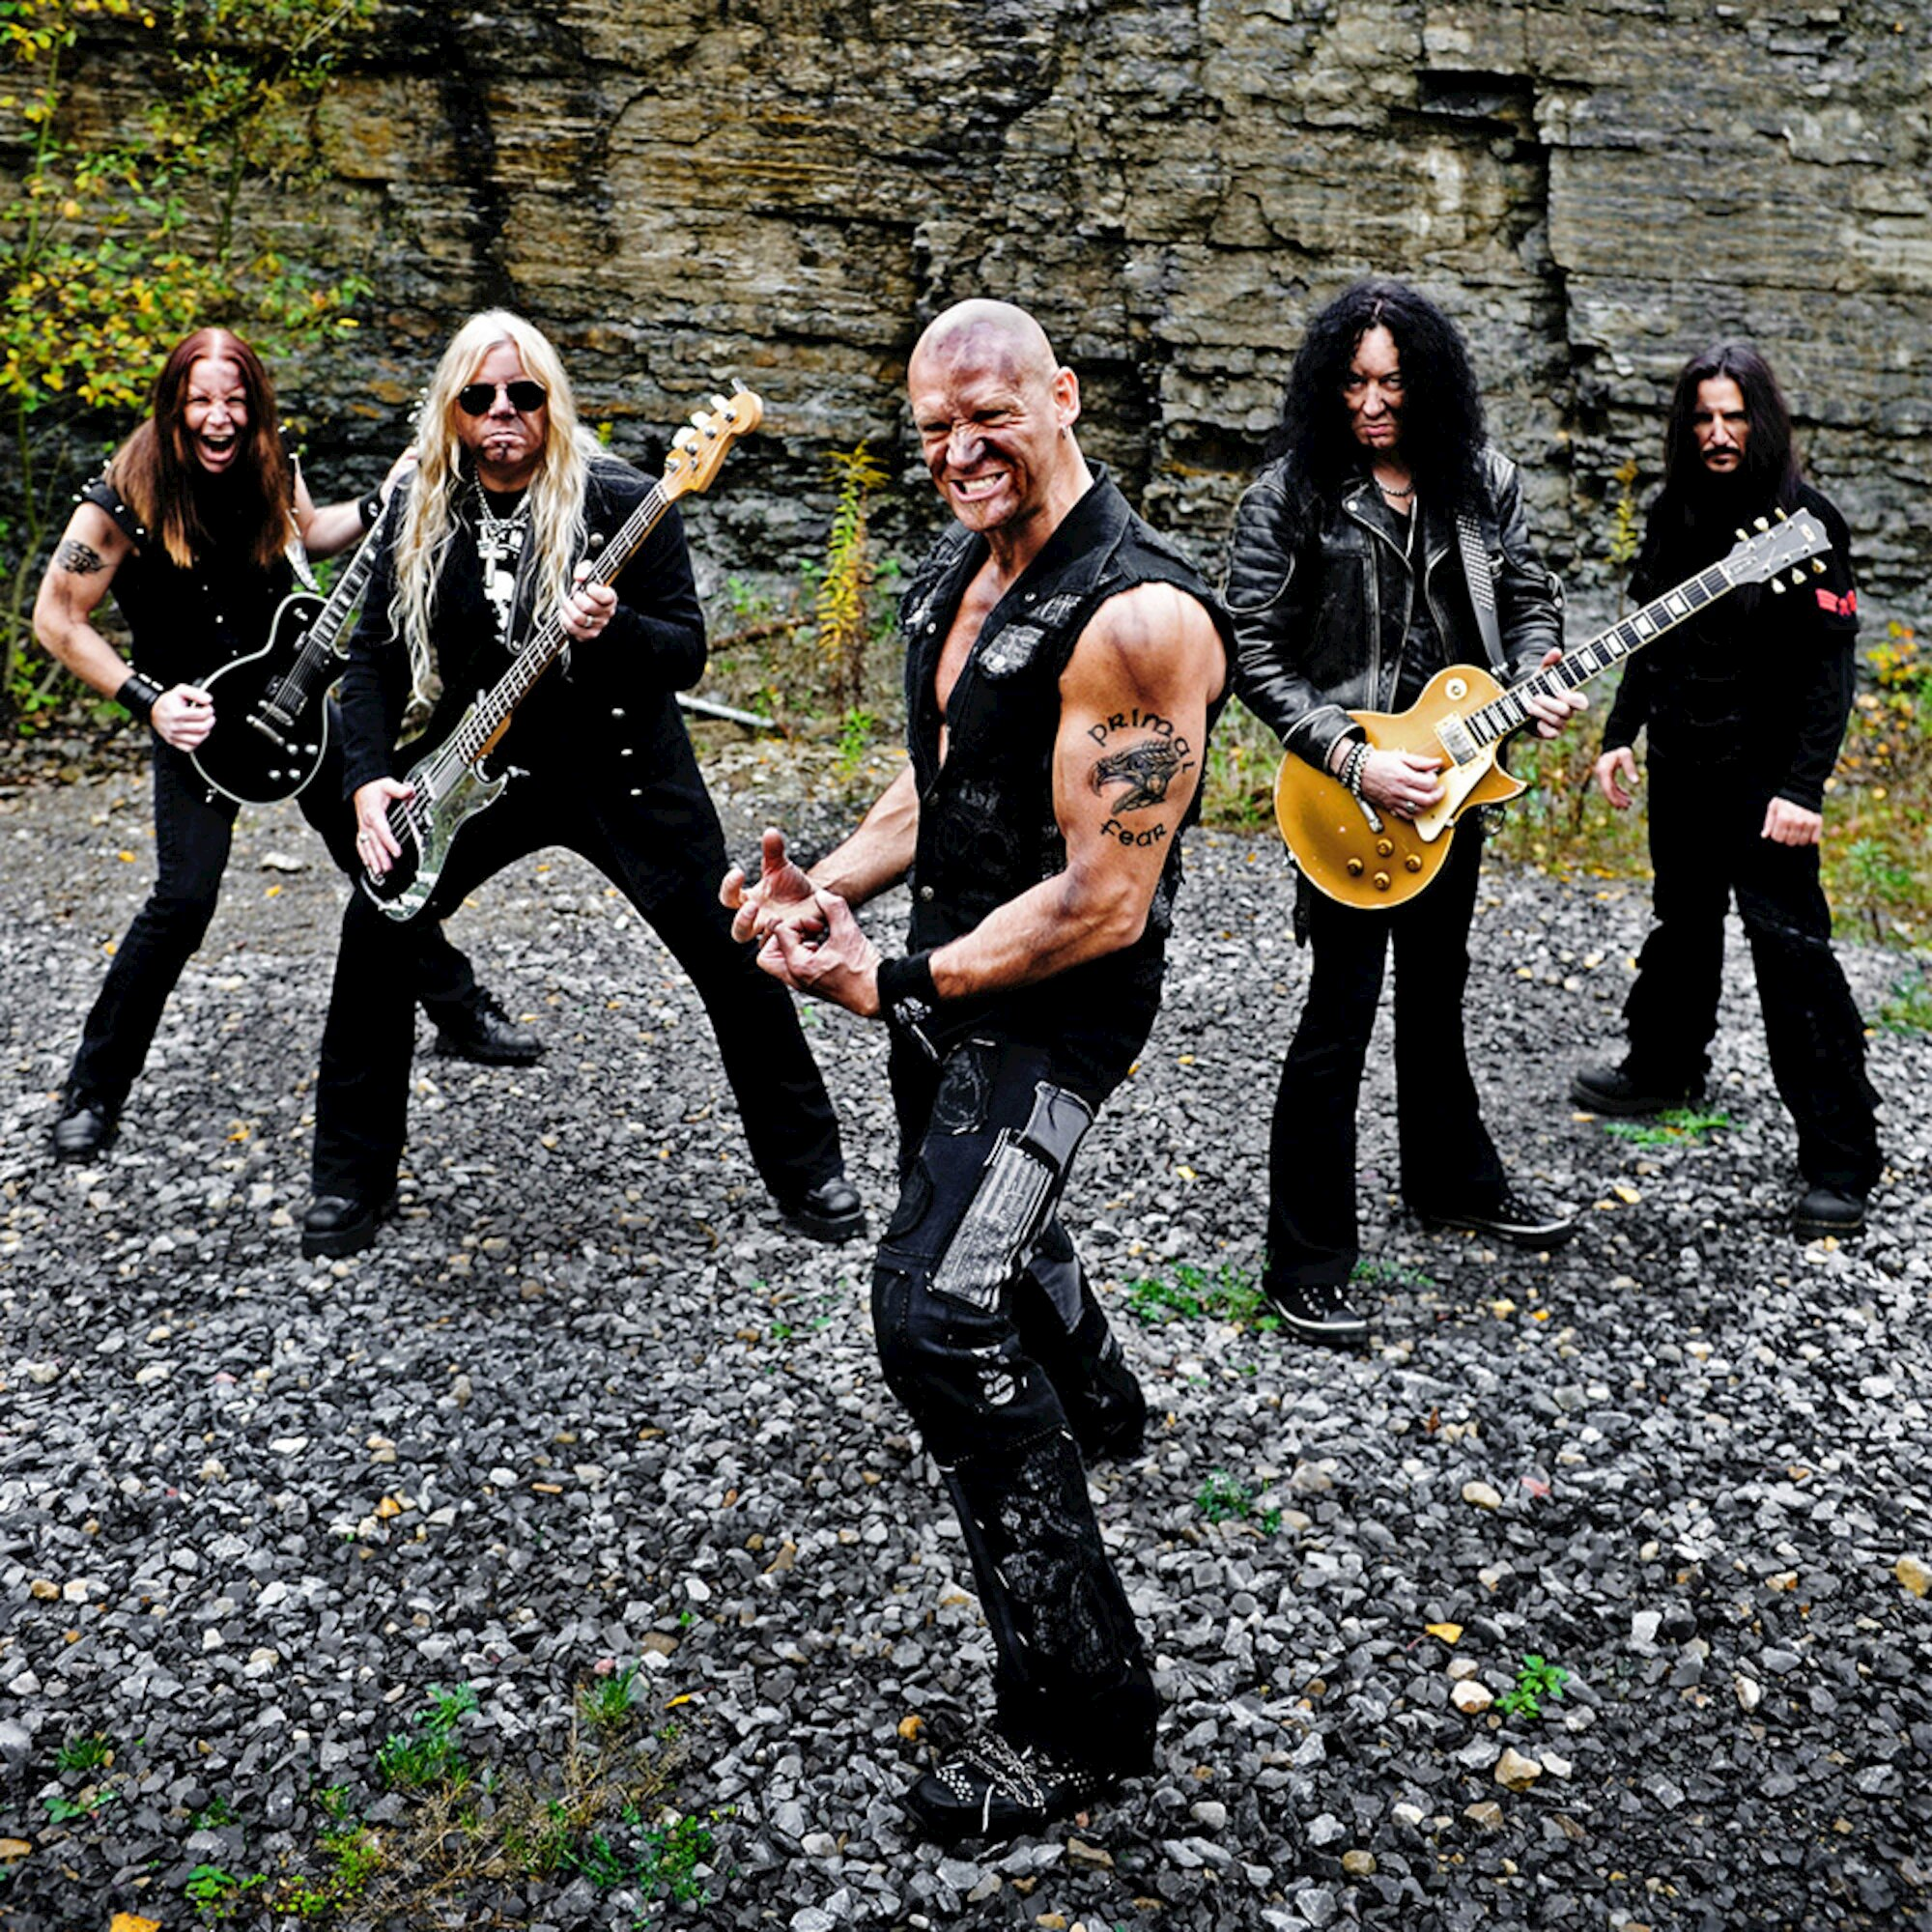 Primal Fear Tour 2021 - Tour Dates for all Primal Fear Concerts in 2021